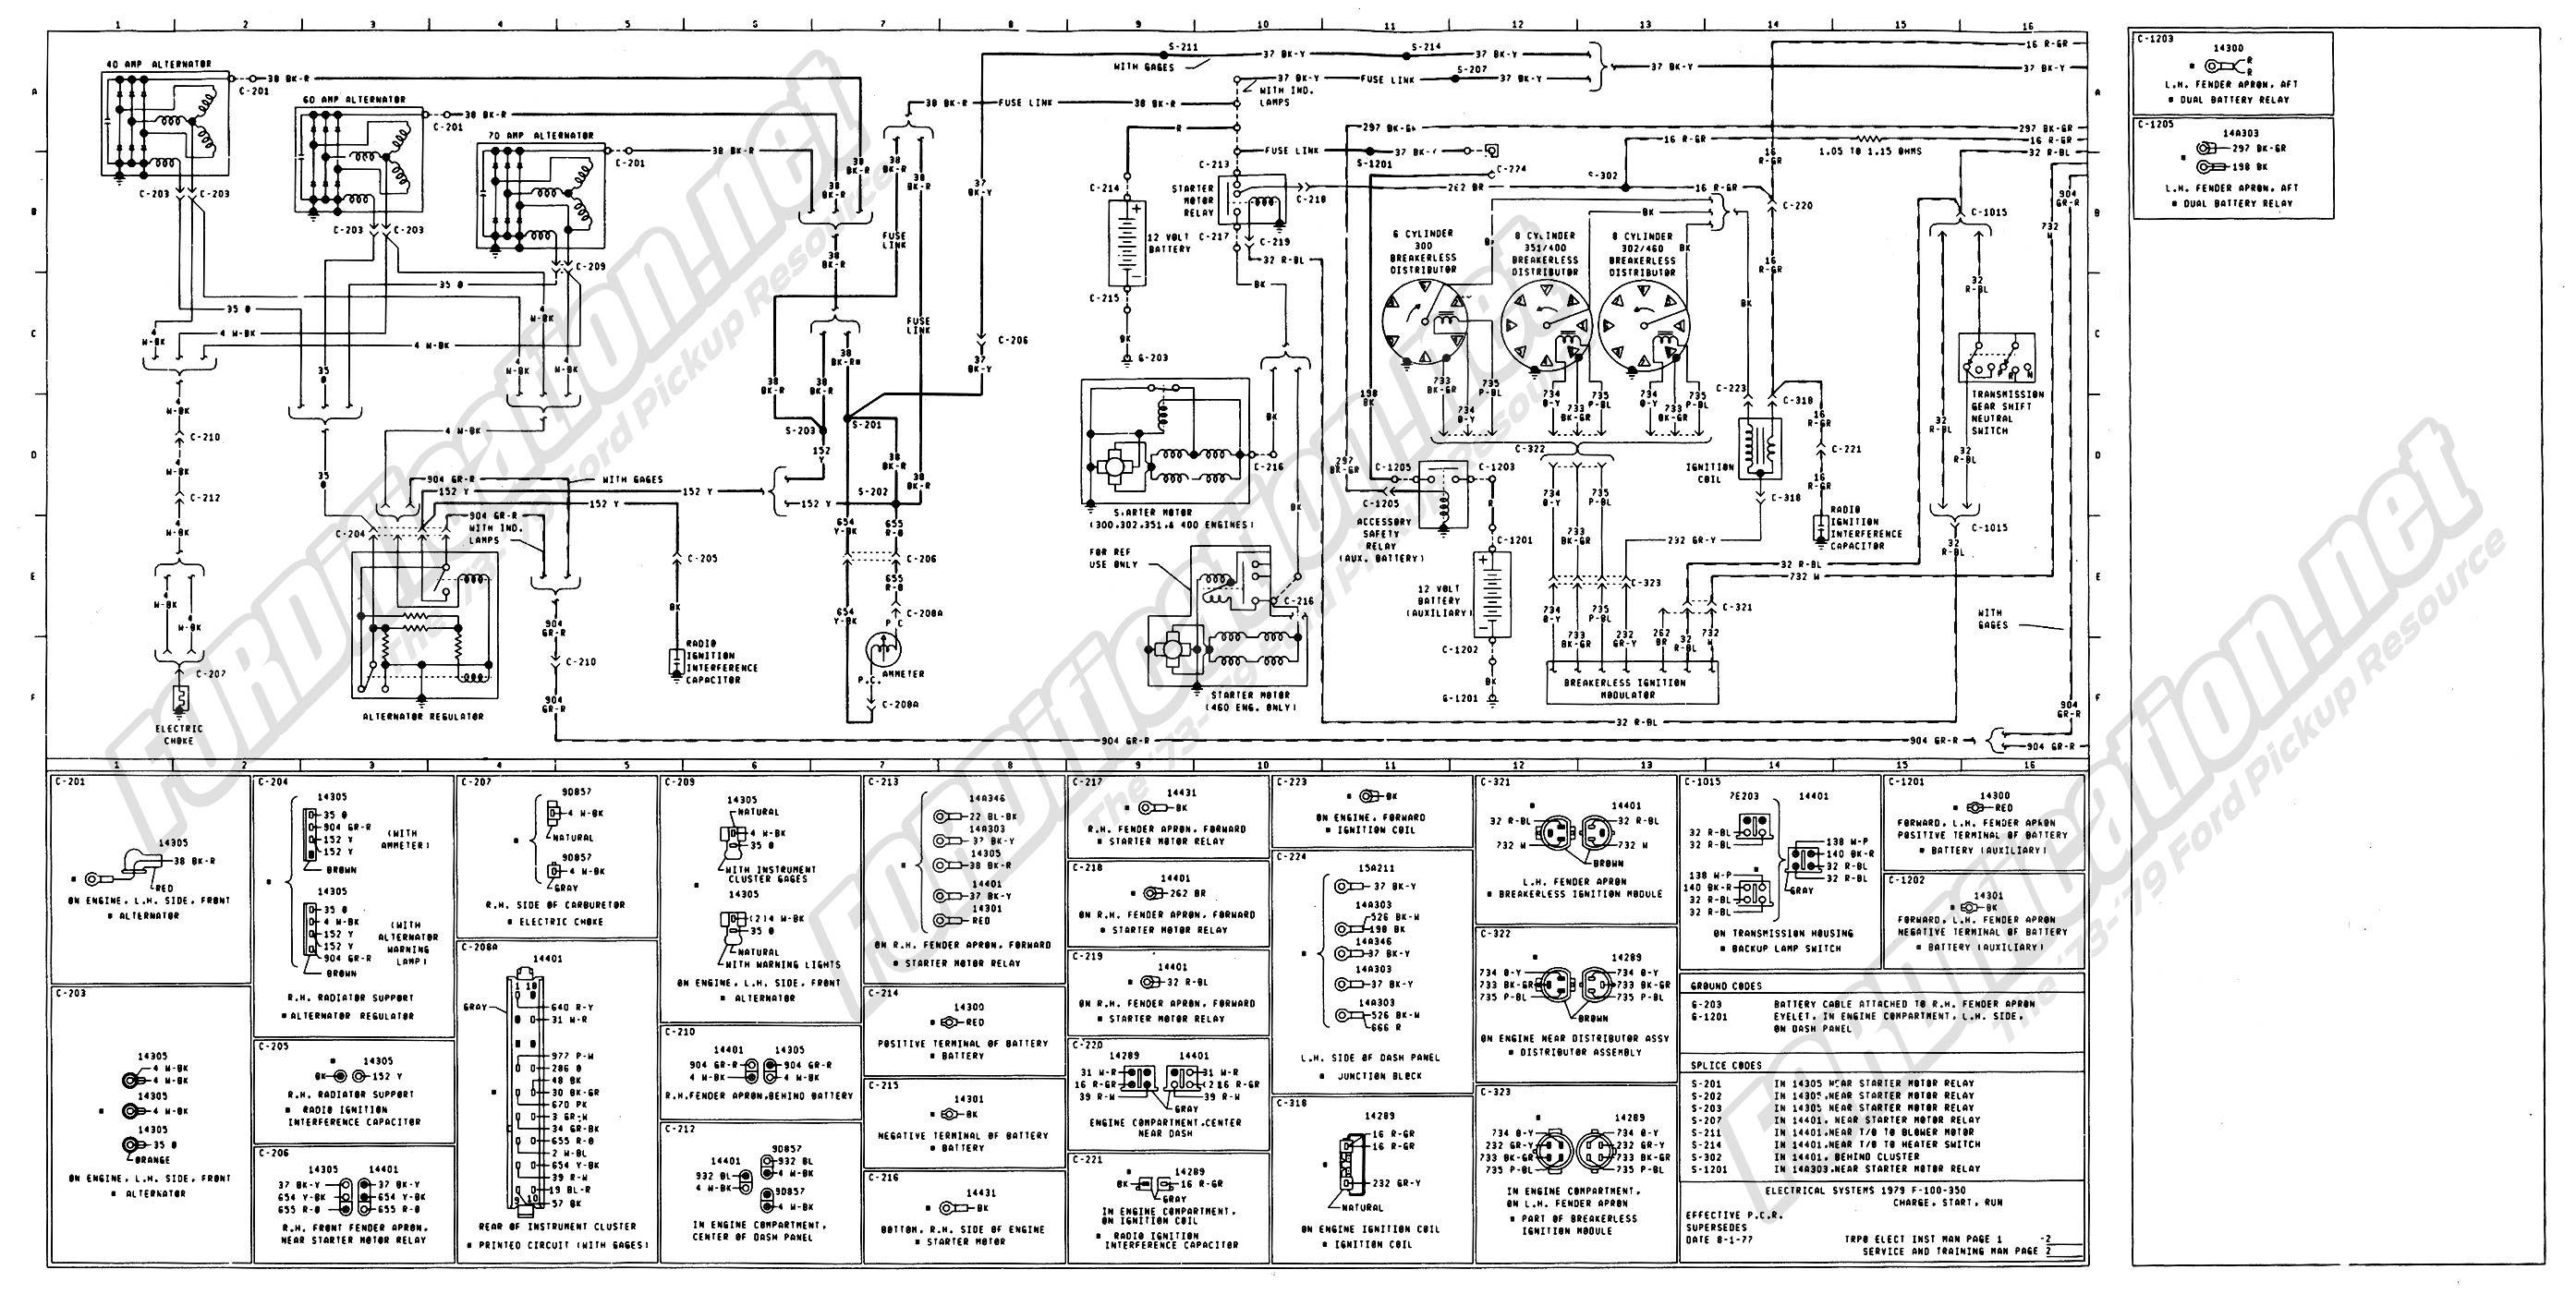 1973 1979 Ford Truck Wiring Diagrams & Schematics Fordification Net Ford  Ignition Coil Wiring Diagram Wiring Diagram For 1975 Ford F250